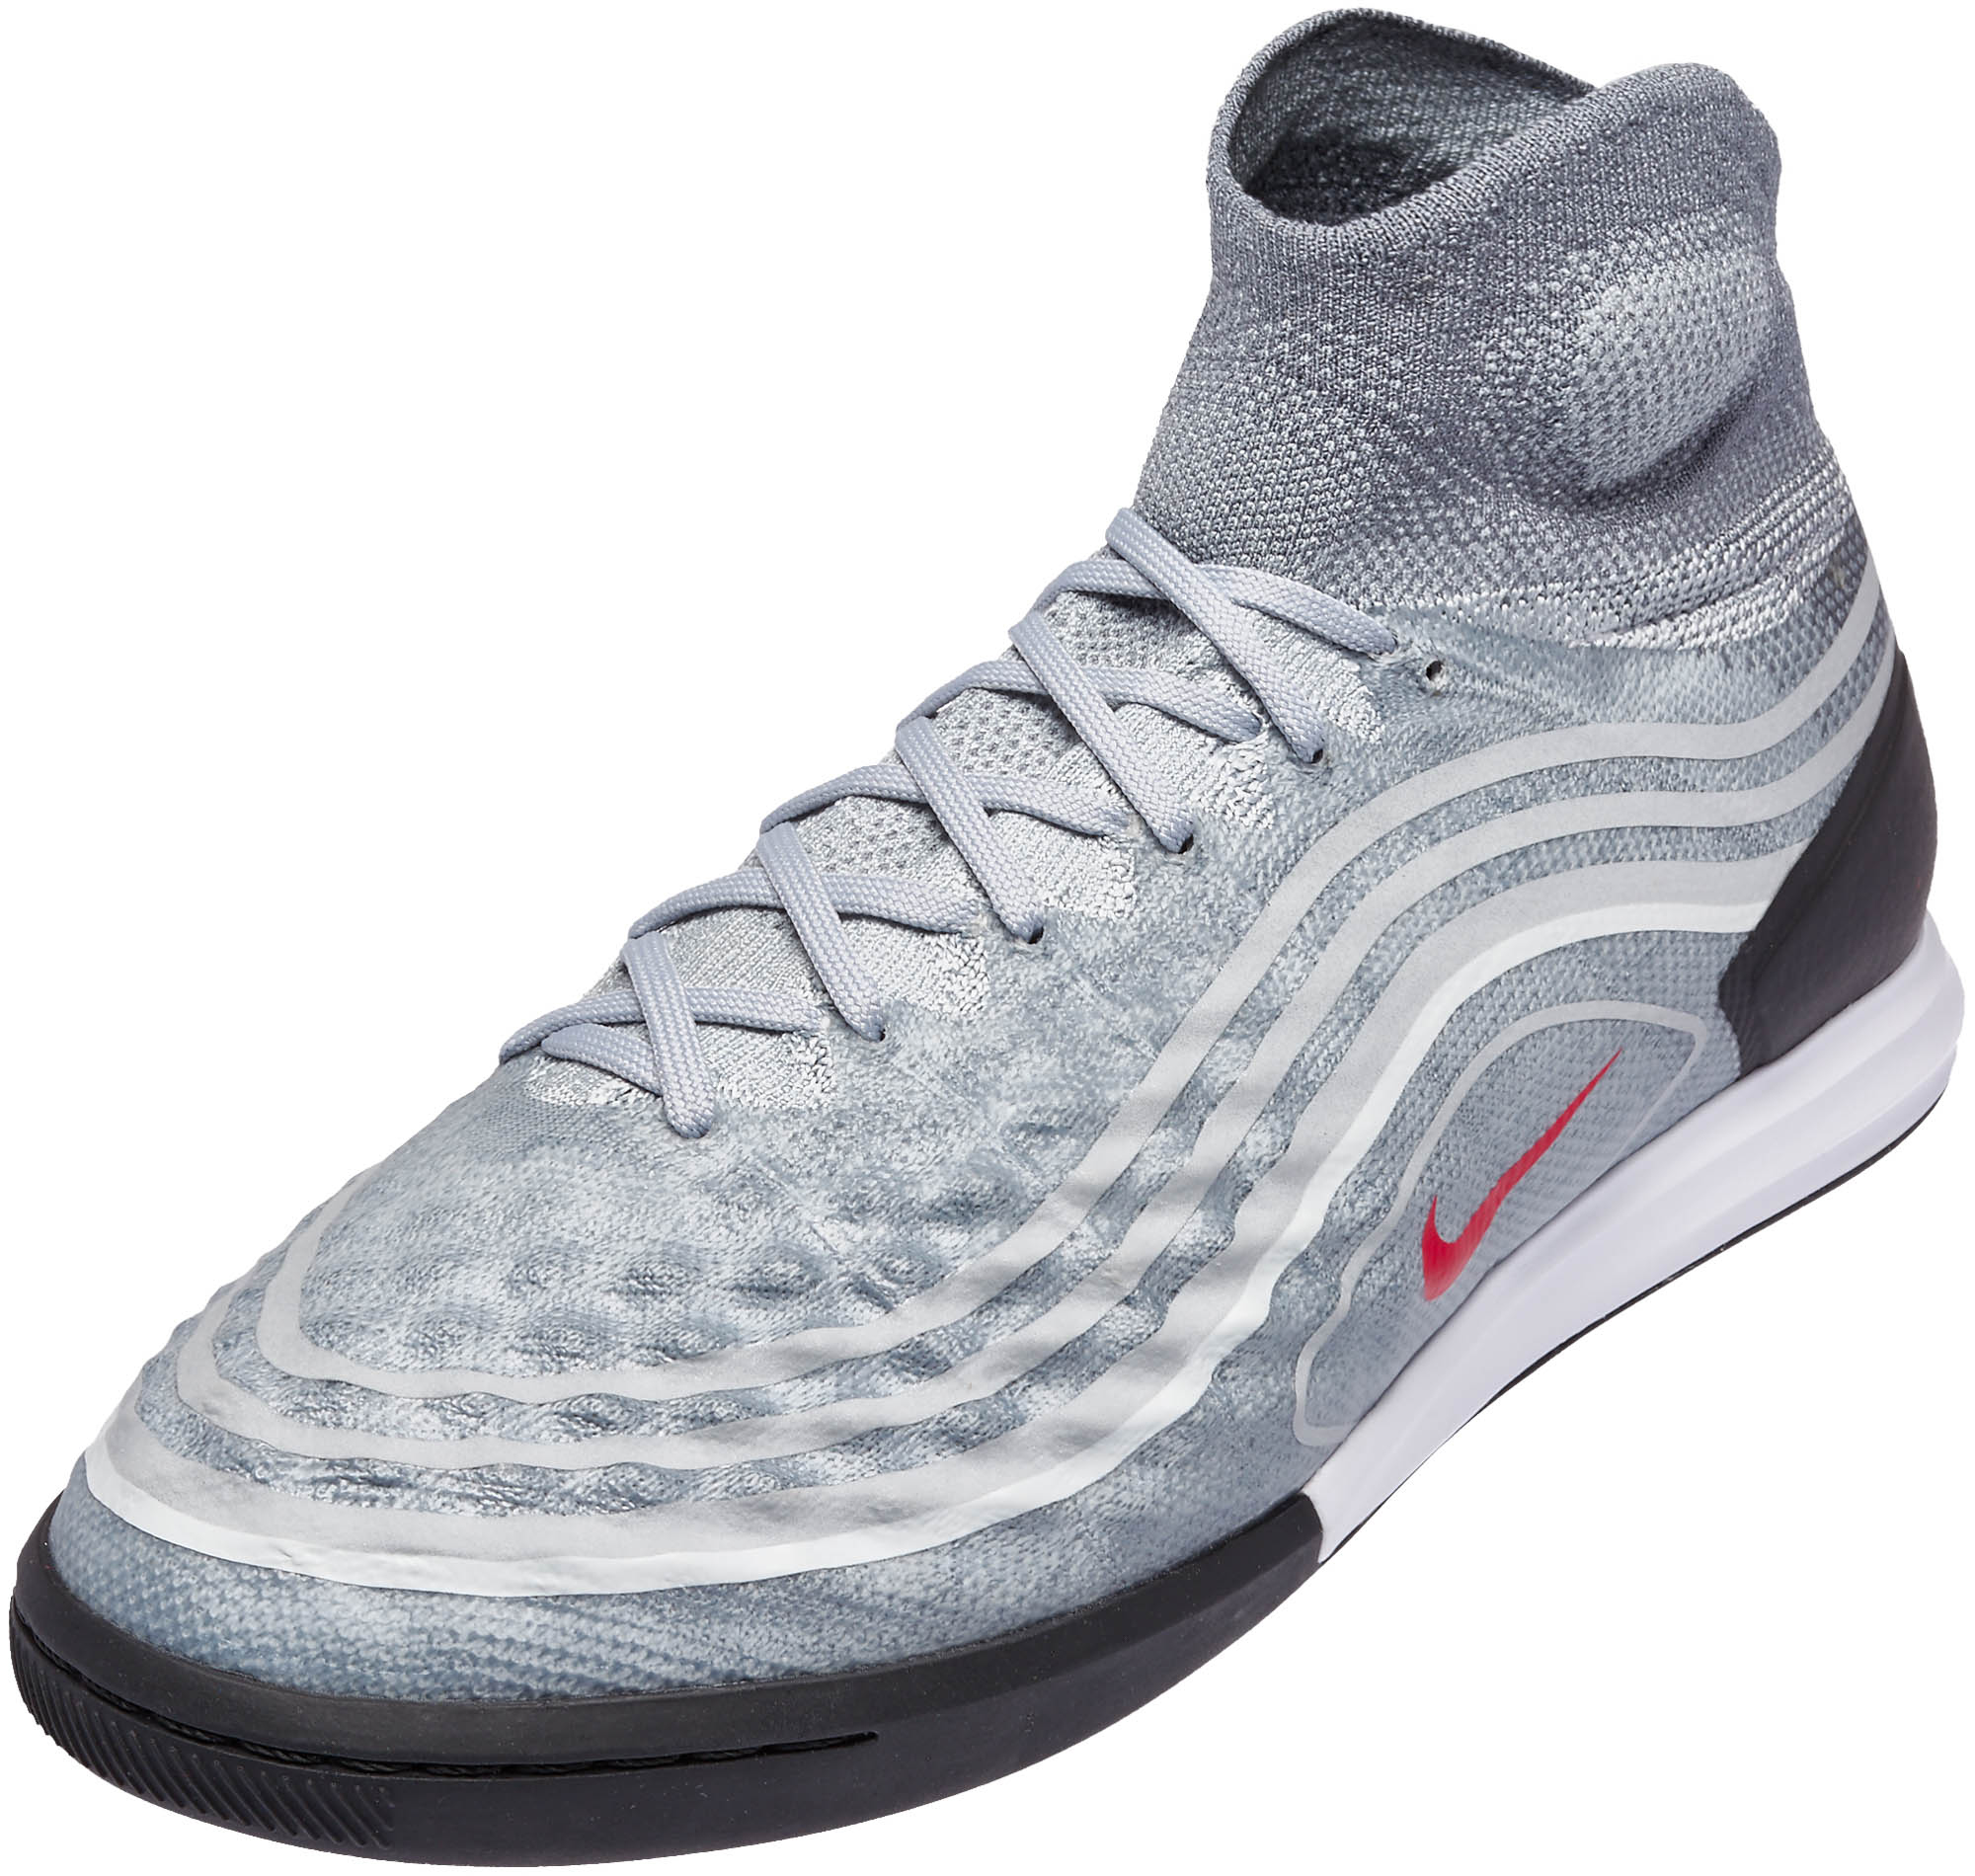 bcf57487fe58 Nike MagistaX Proximo II IC - Grey Proximo Indoor Shoes